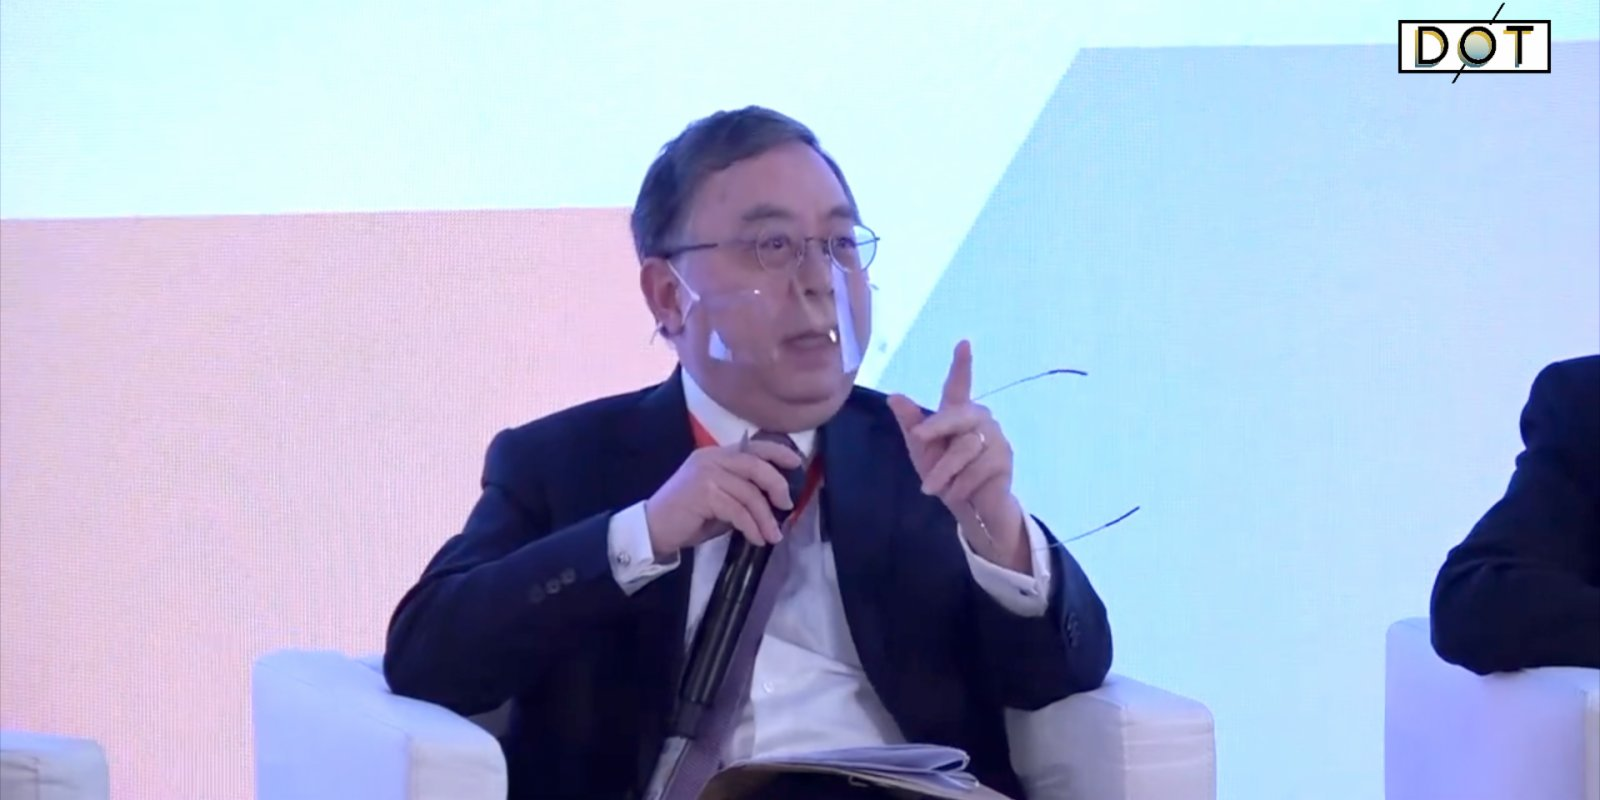 Watch This | HK media, educators 'poisoned' young people: Real estate magnate